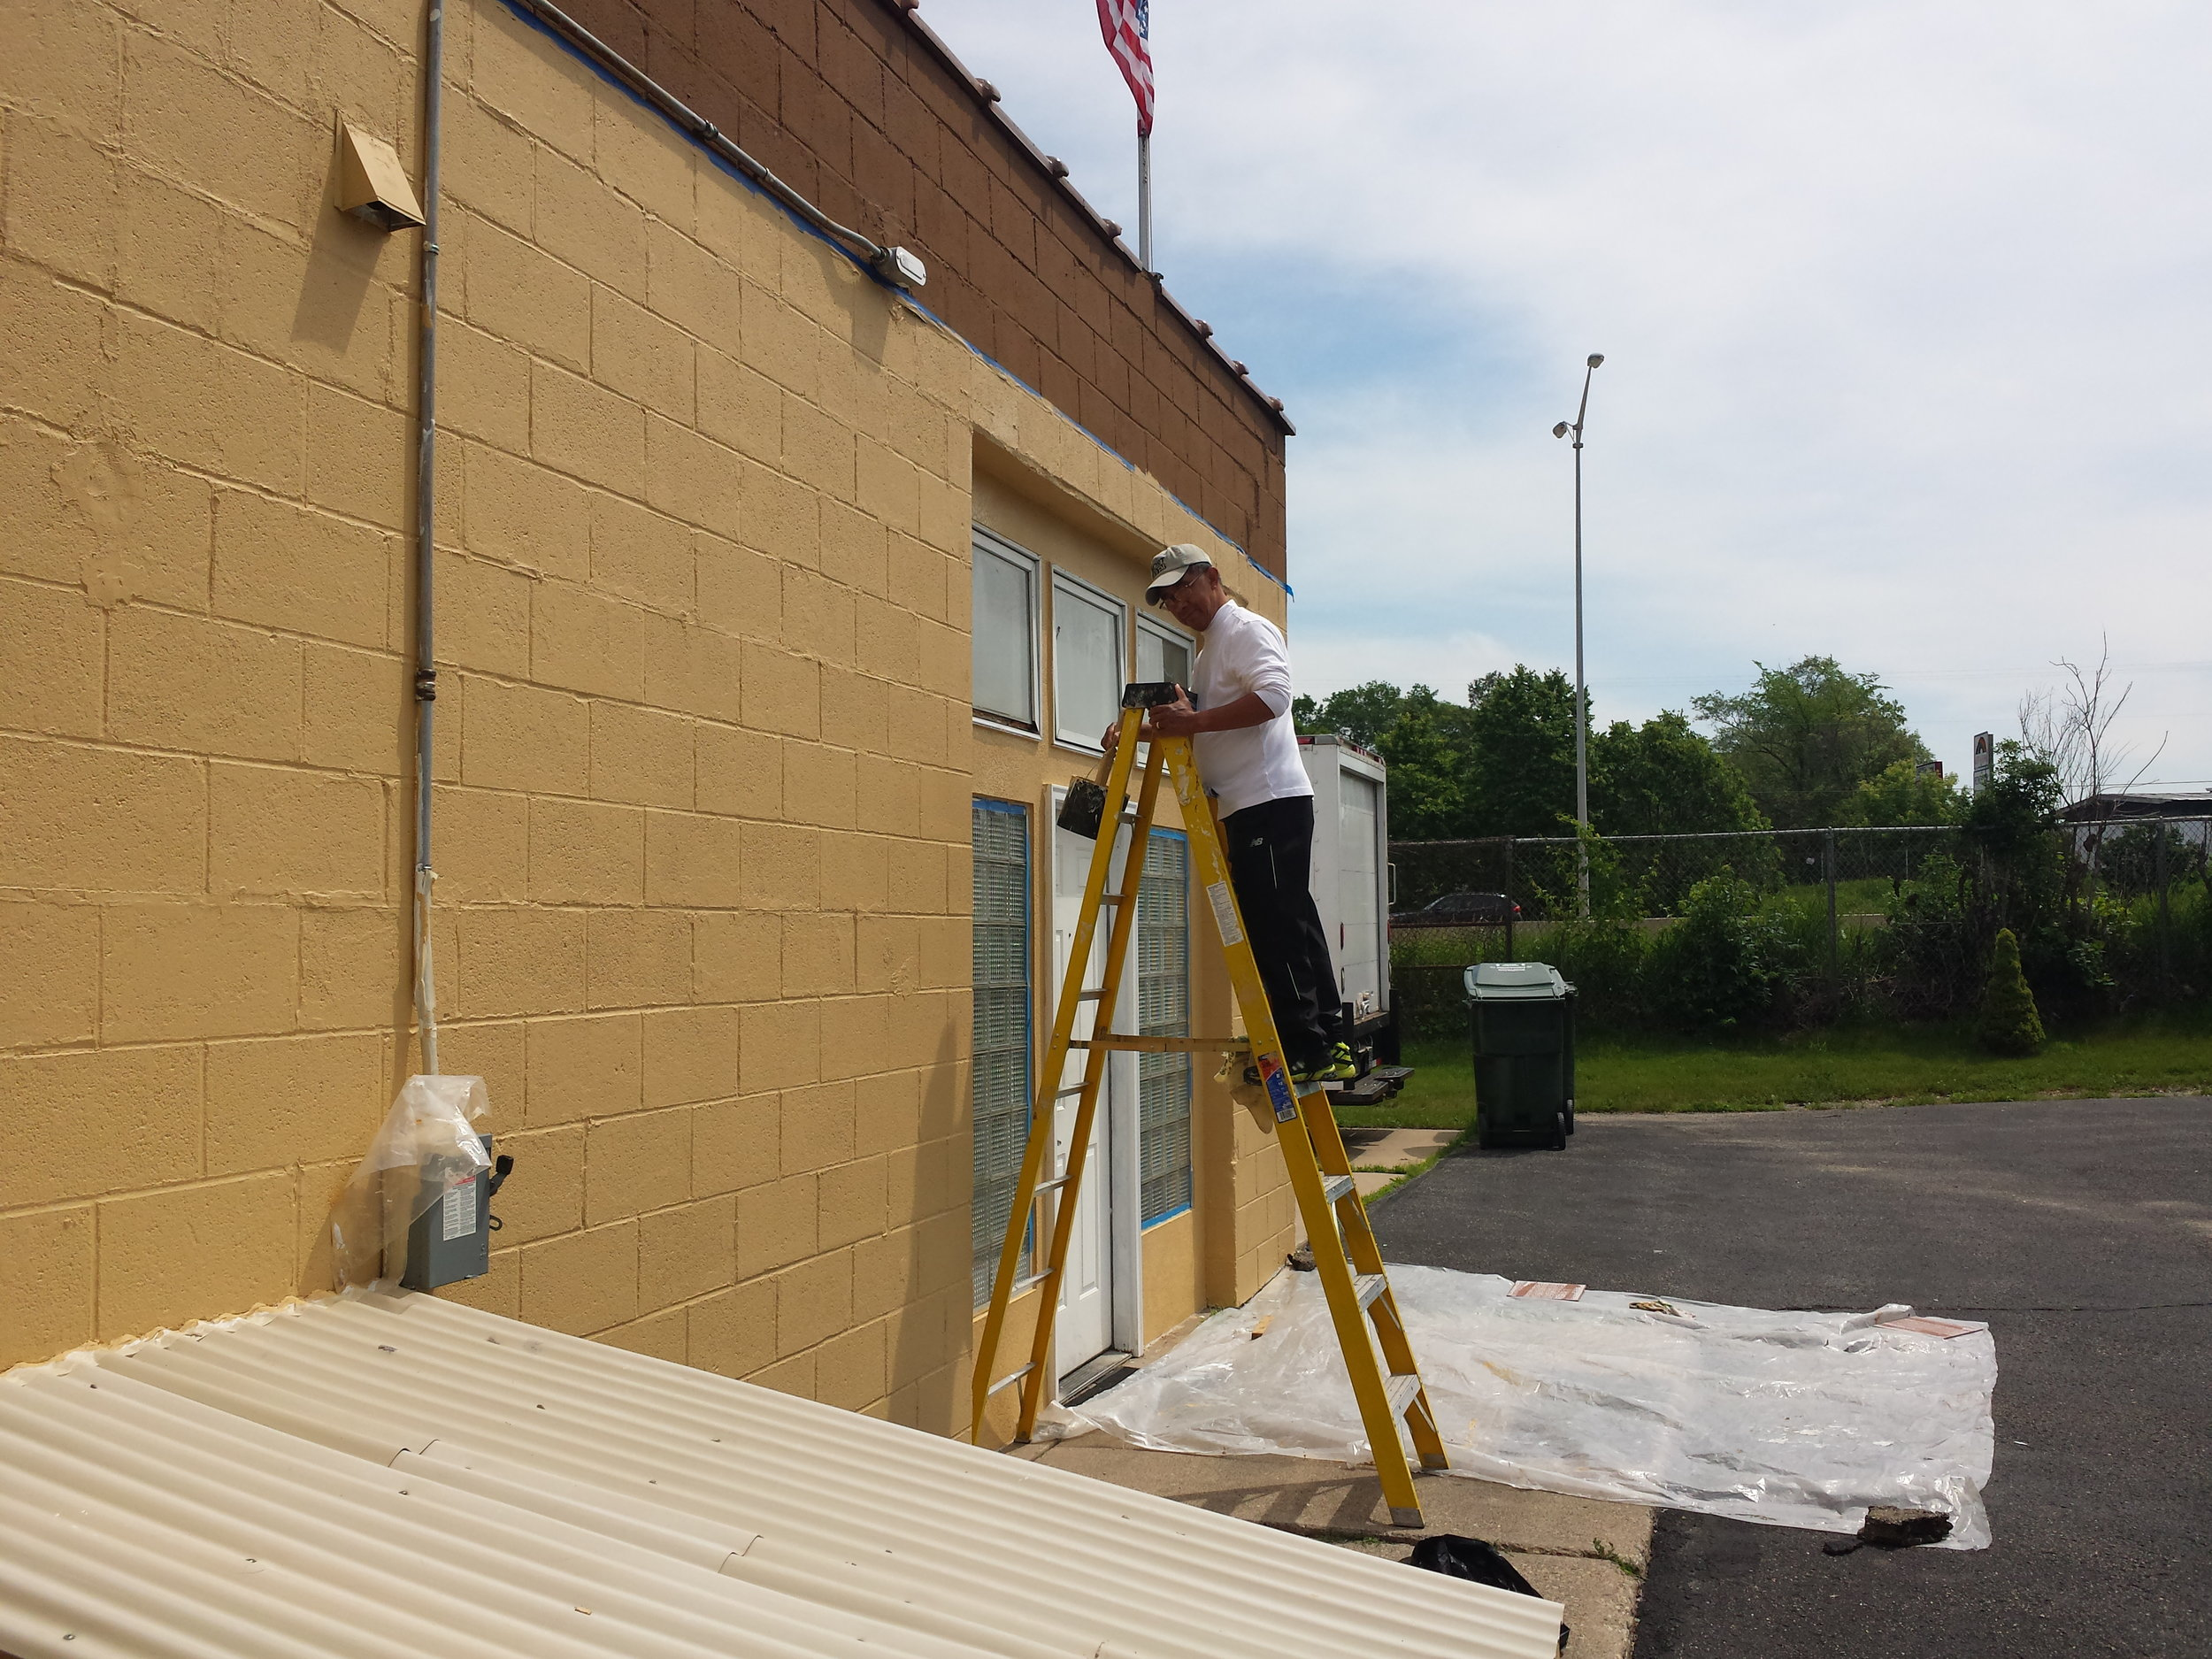 Legionnaire Romeo applying finishing touches to the painting of Post 501, July 2018.